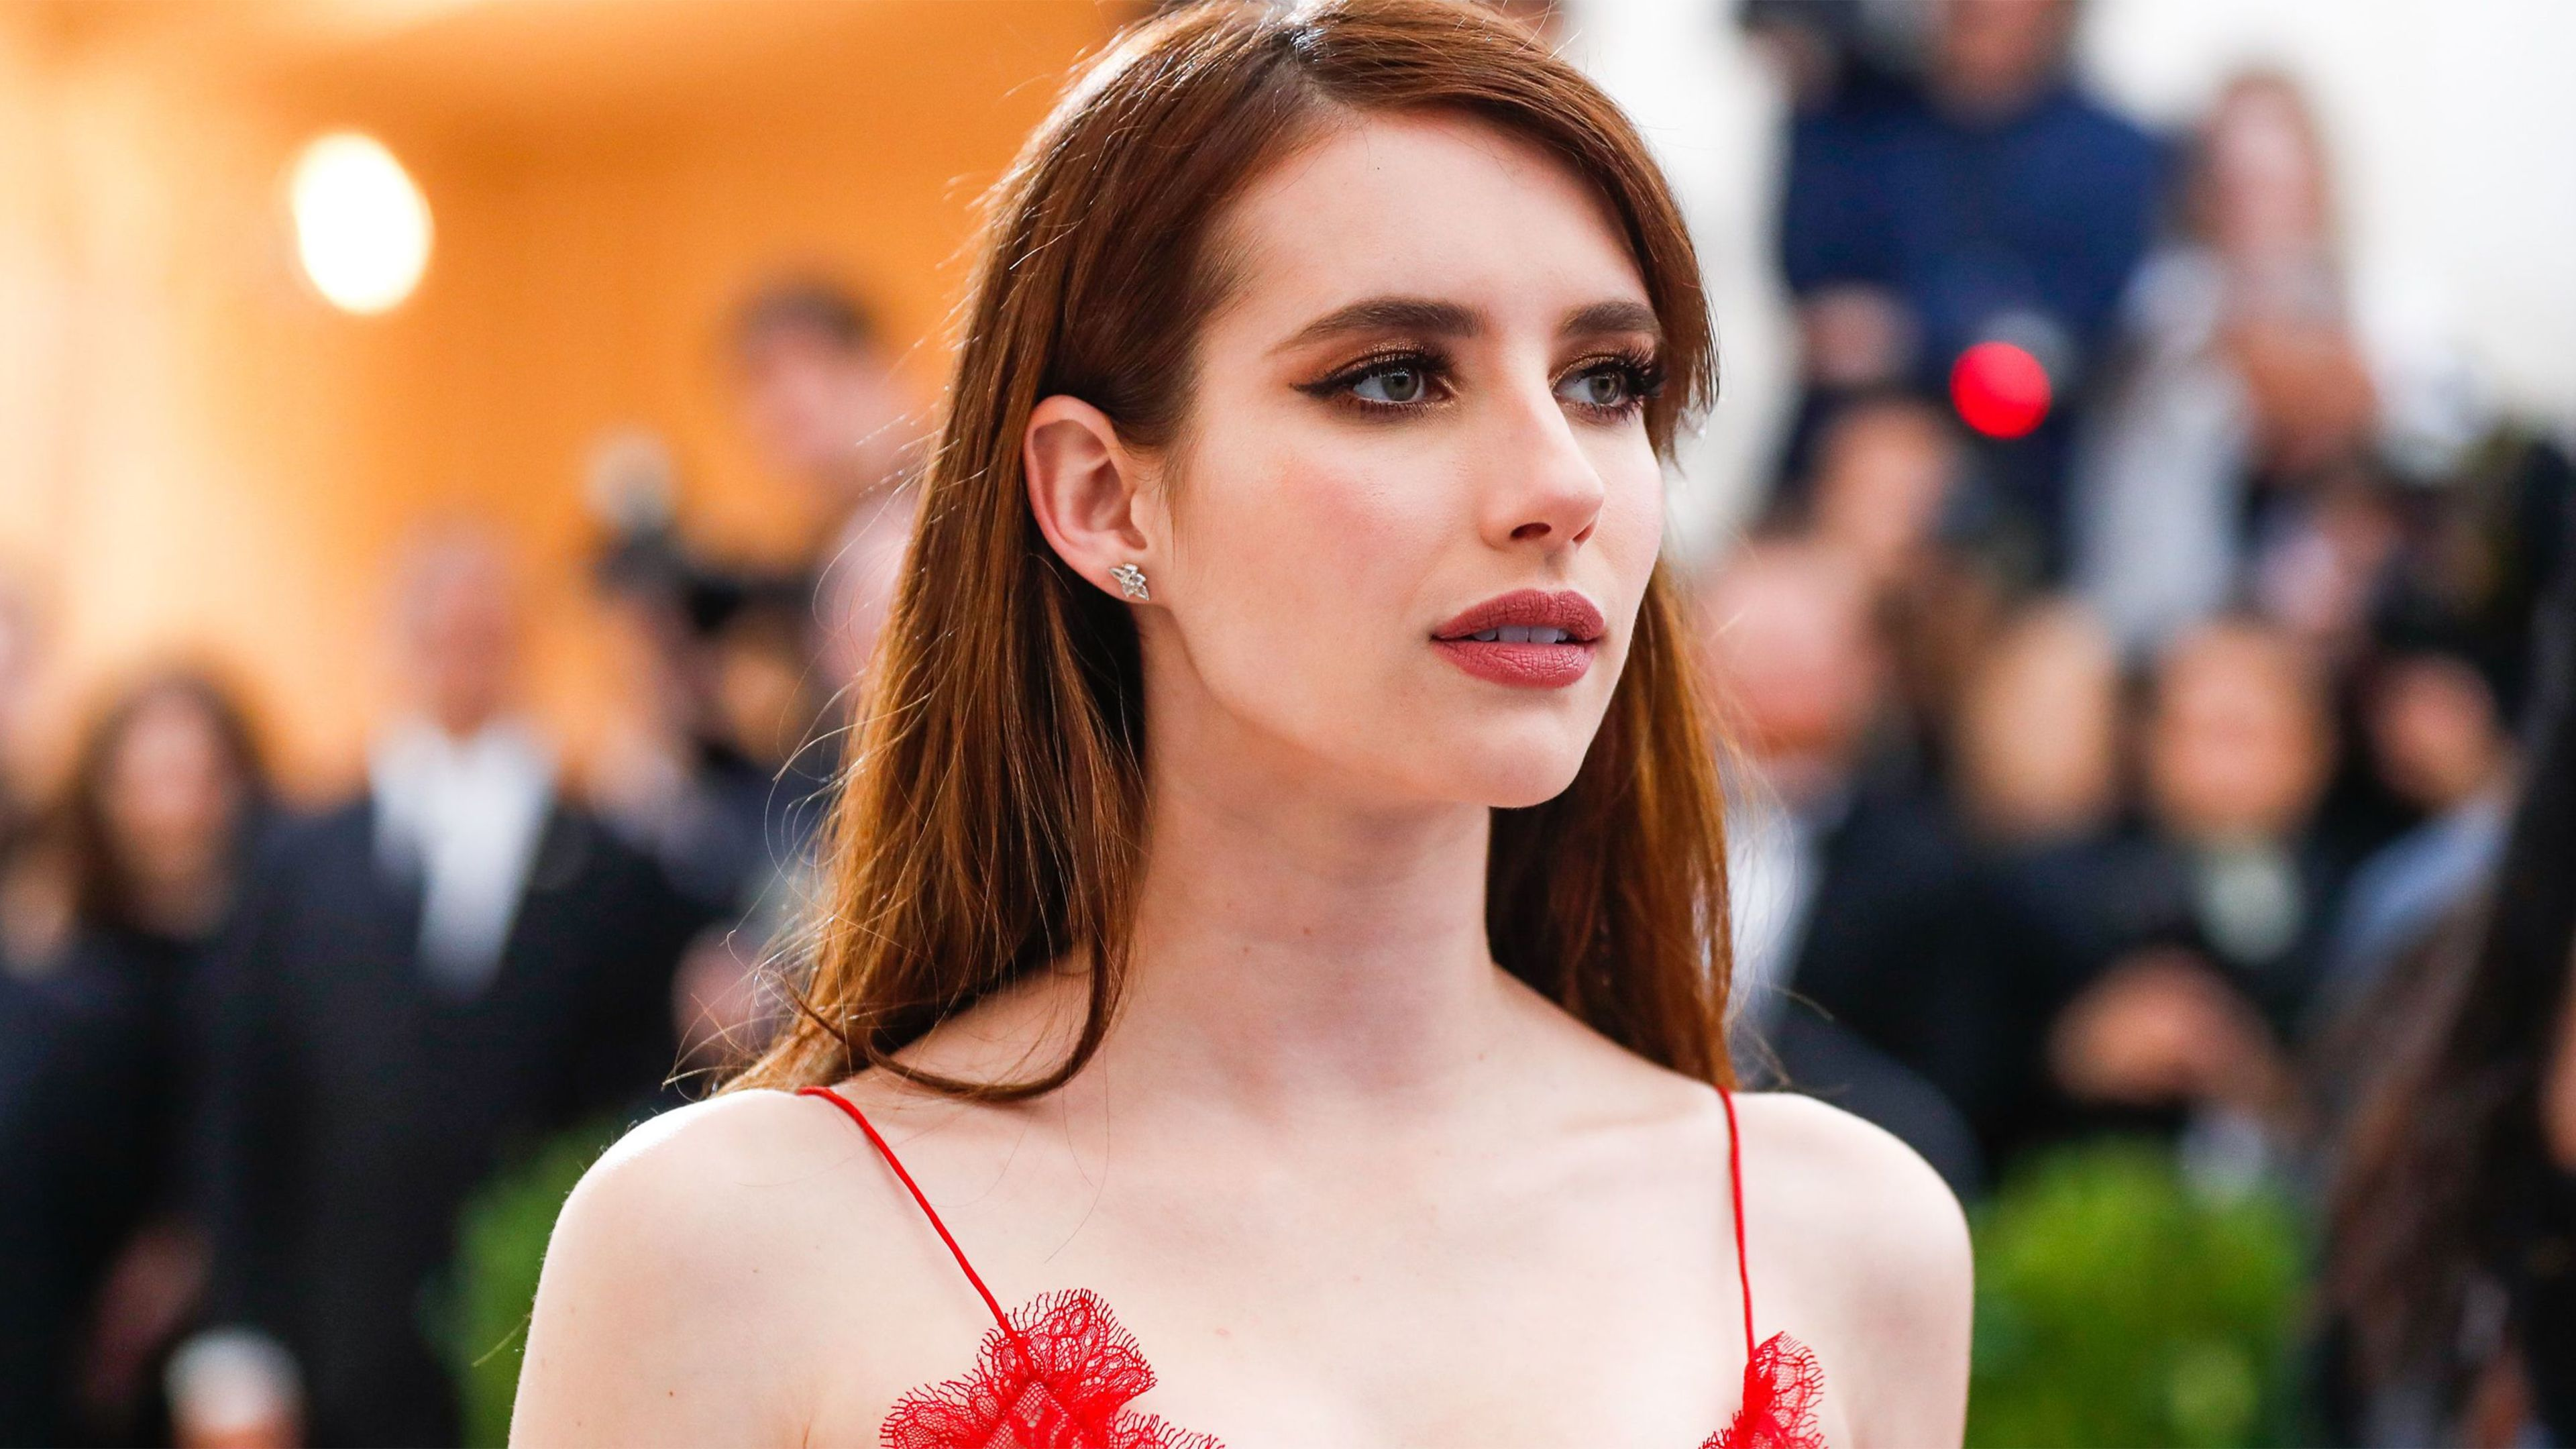 emma roberts at met gala 1536950112 - Emma Roberts At Met Gala - hd-wallpapers, girls wallpapers, emma roberts wallpapers, celebrities wallpapers, 4k-wallpapers